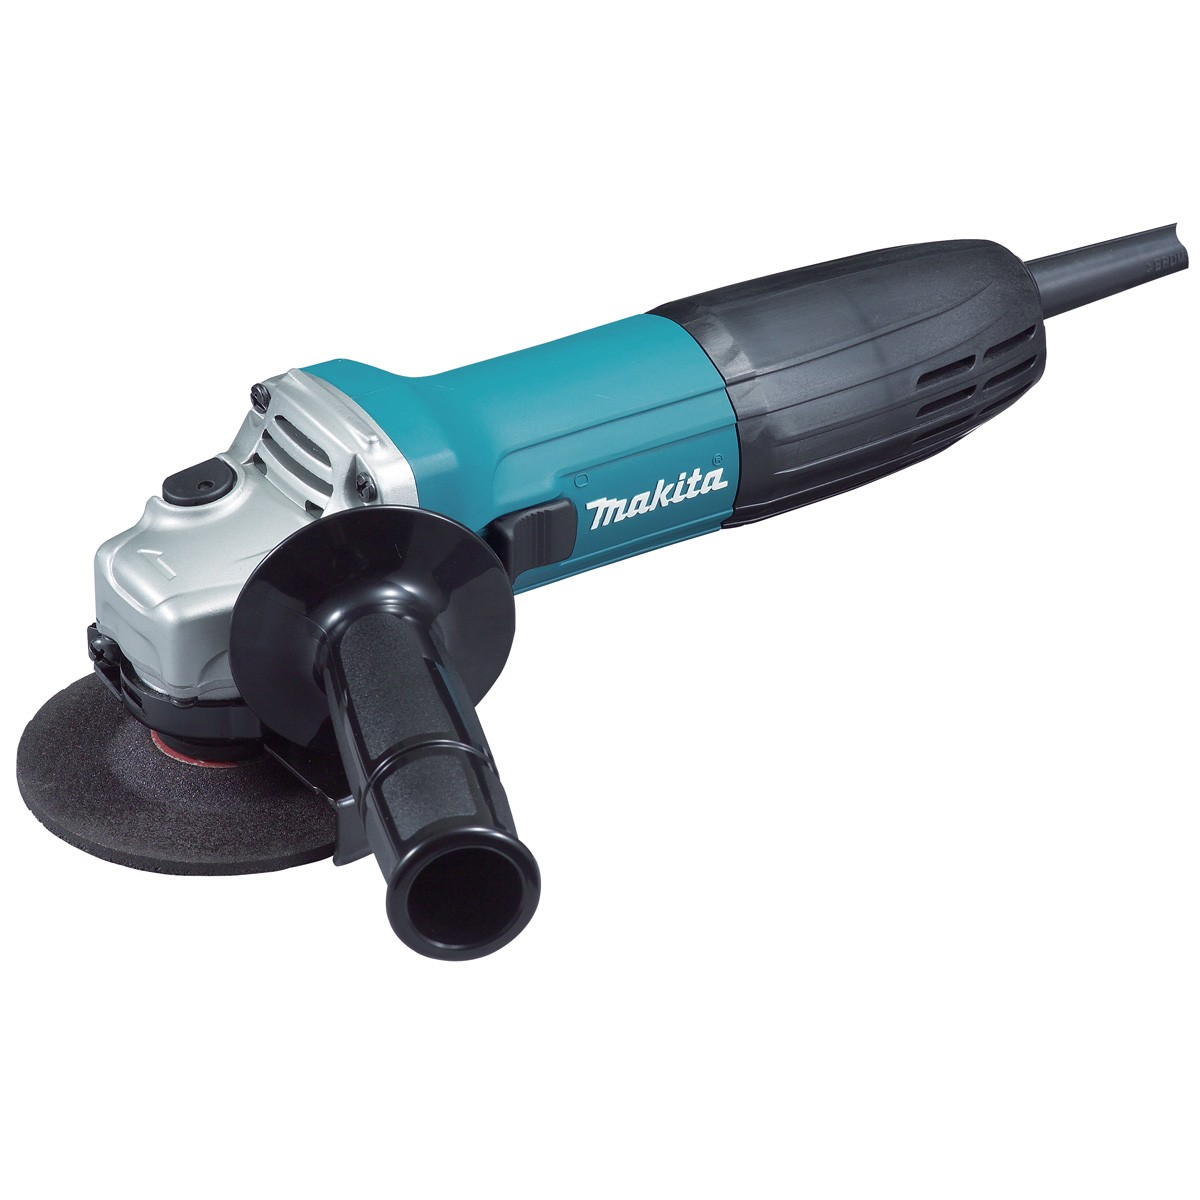 Makita GA4030 100mm Slim Design Angle Grinder 110v